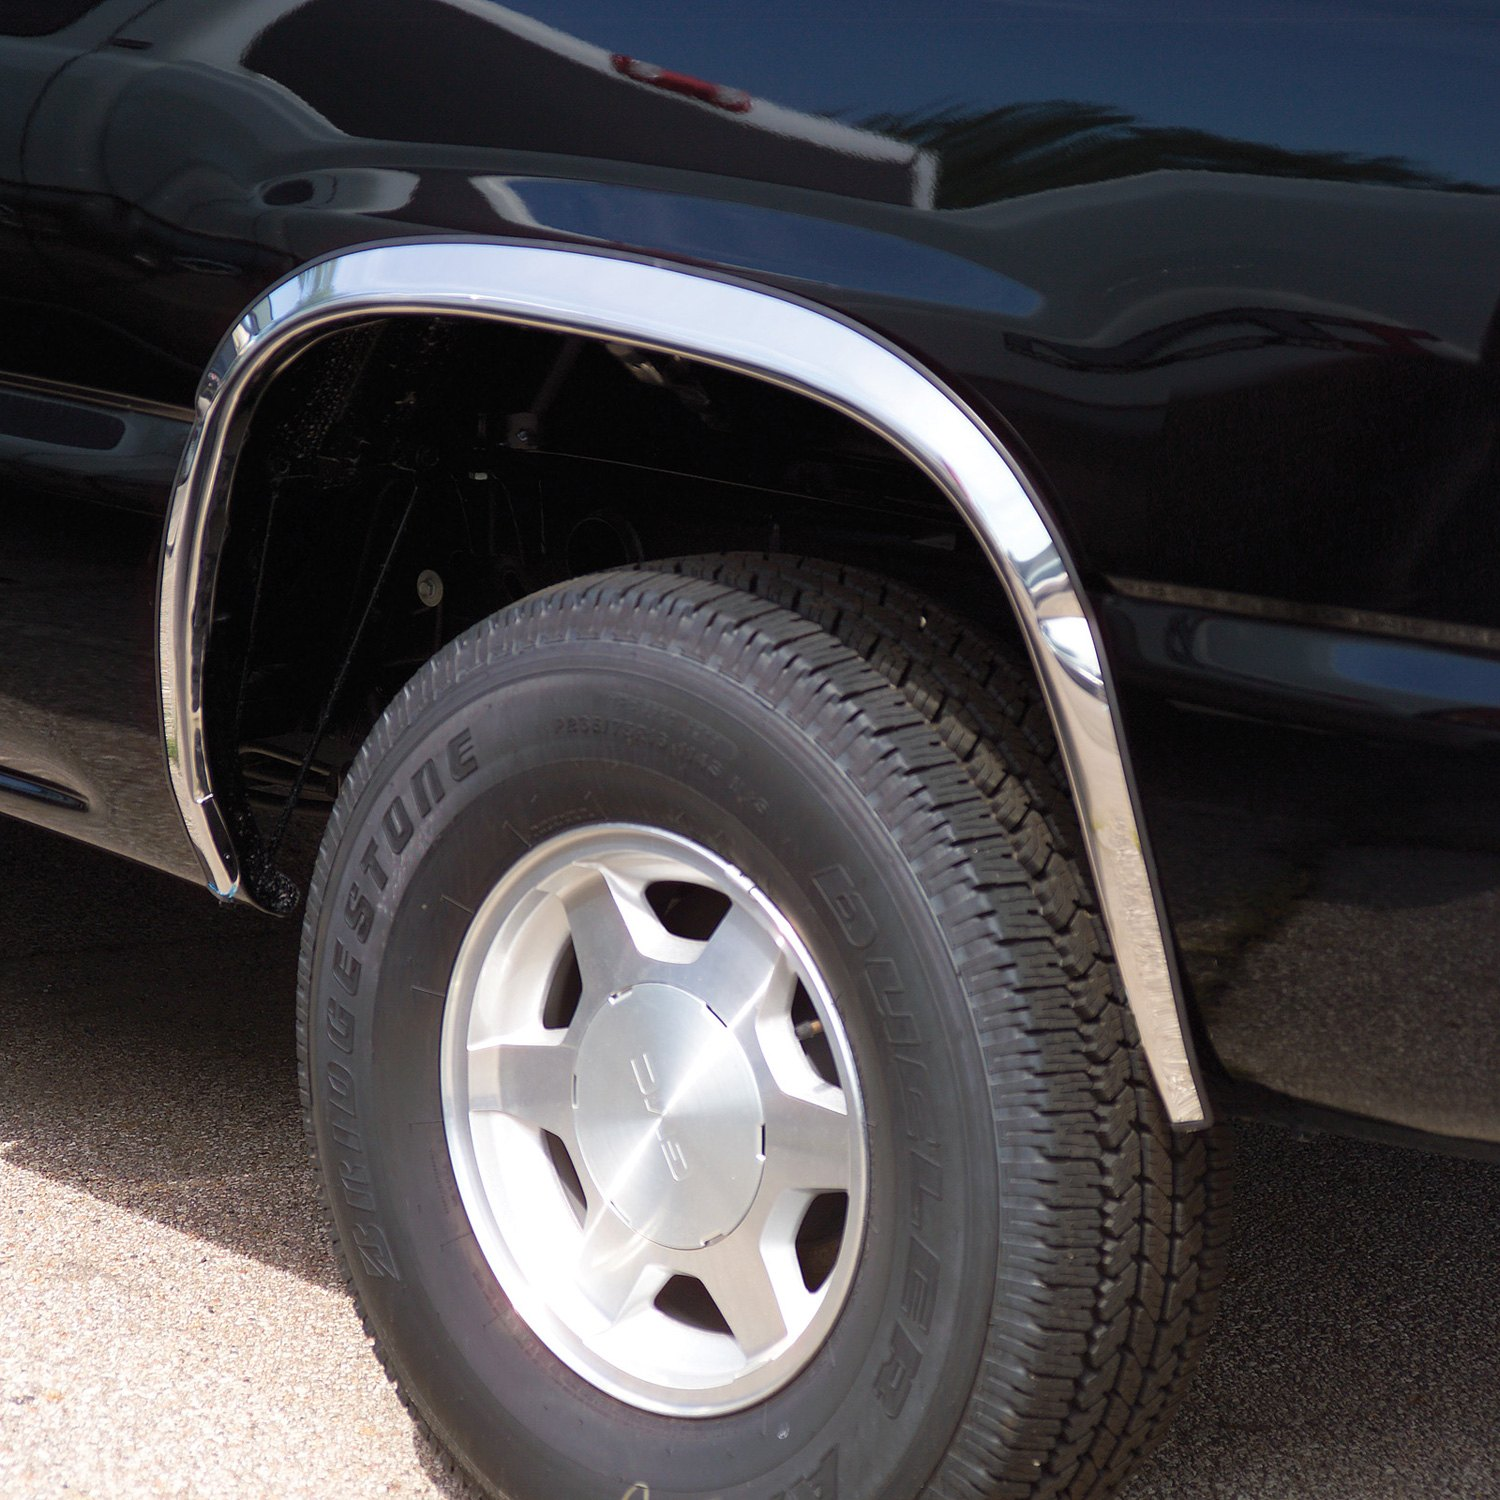 Used Cadillac Escalade Parts For Sale: Cadillac Escalade 2002 Polished Fender Trim